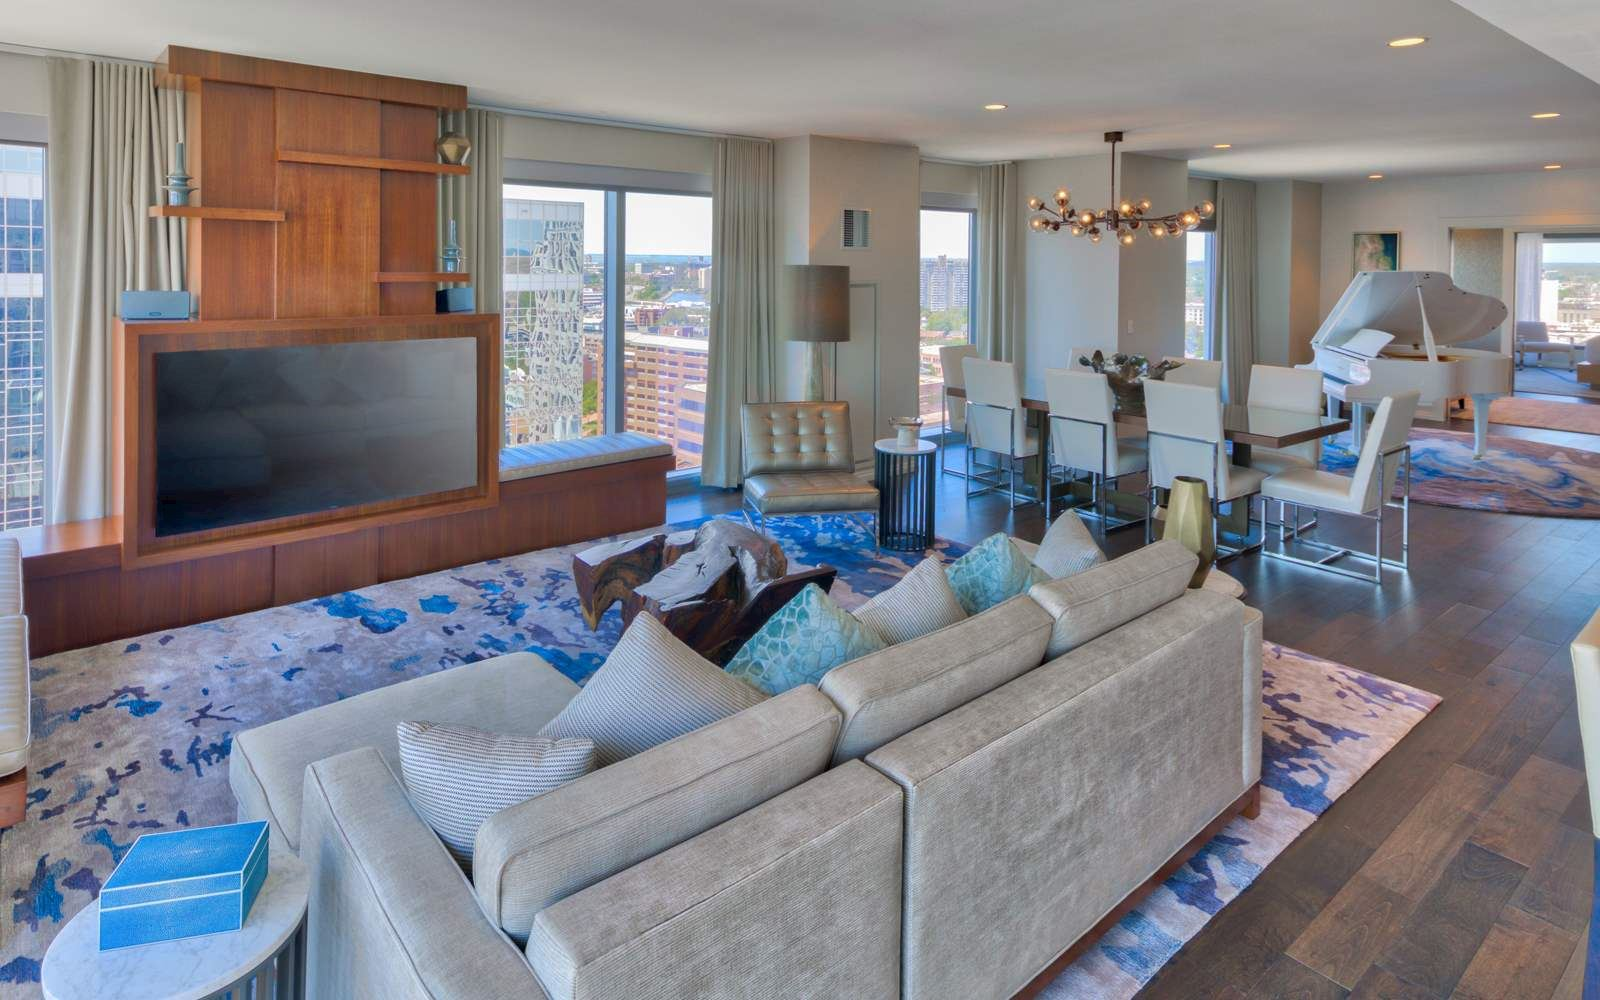 Upgrade To Our Spacious Norfolk Presidential Suite The Main